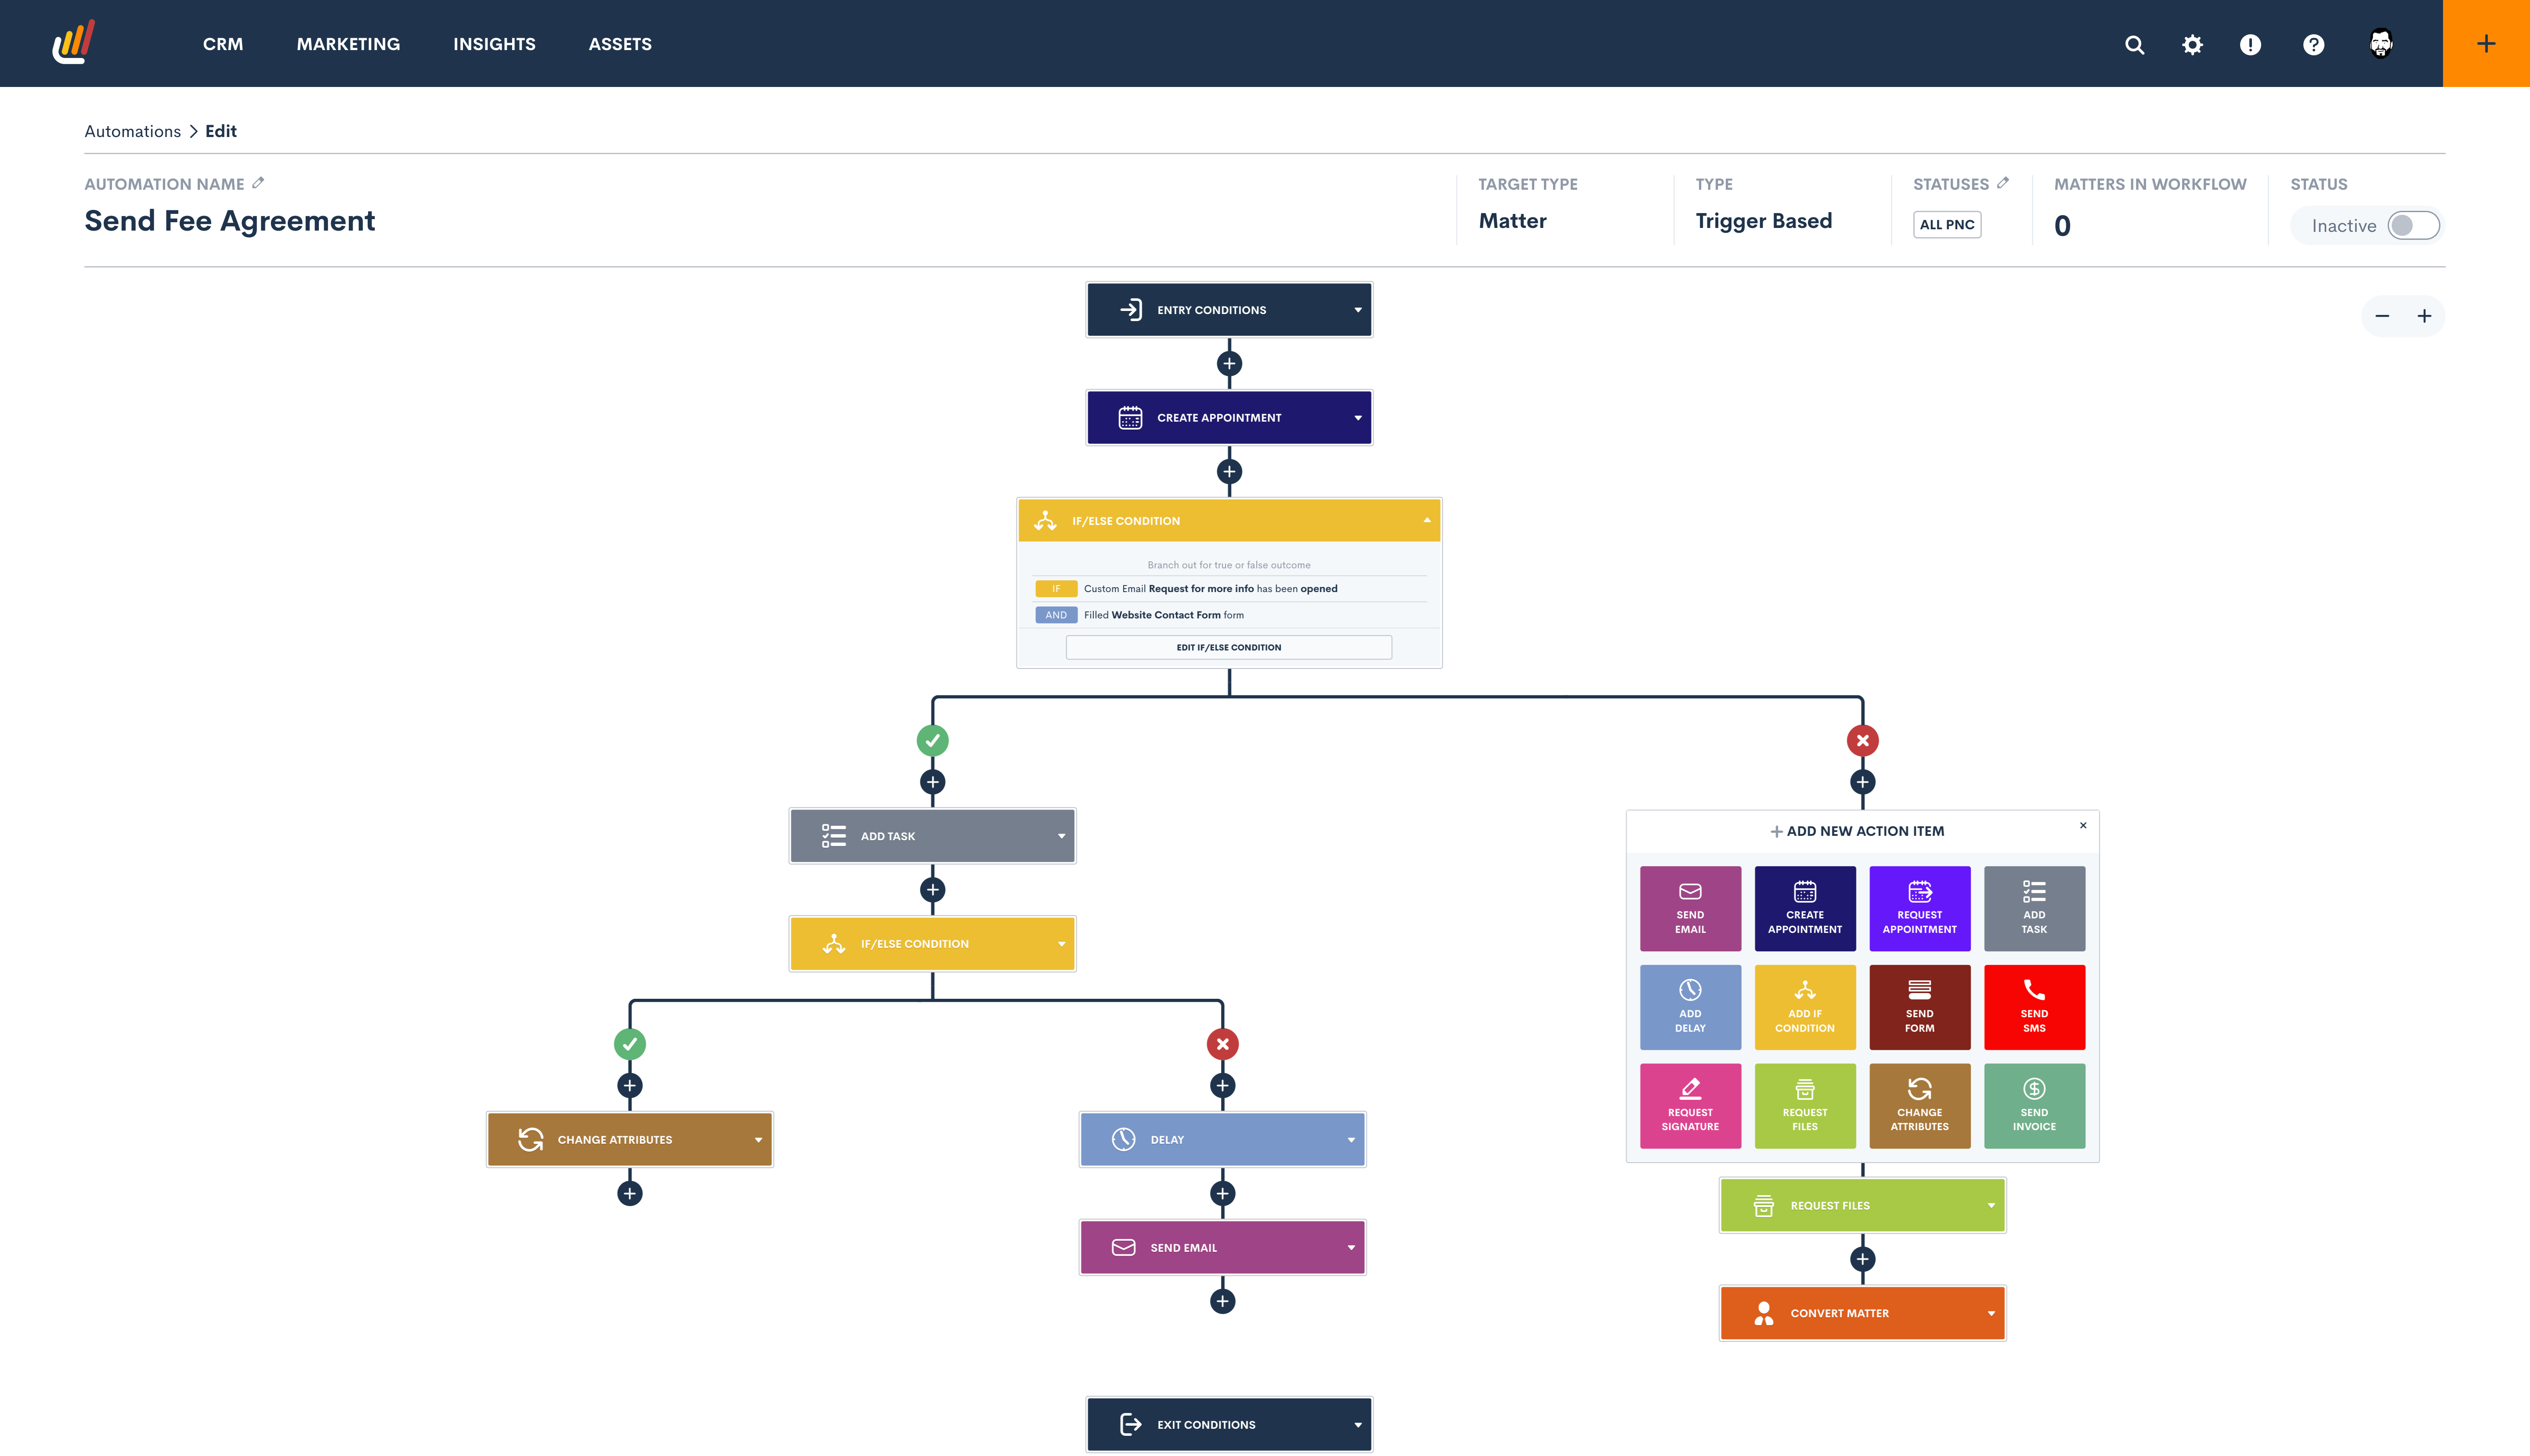 The automation engine is an intuitive, visual interface that allows user to create customized workflows by simply connecting the system actions you want to automate (e.g. email, SMS, appointment request, send document). No code needed!